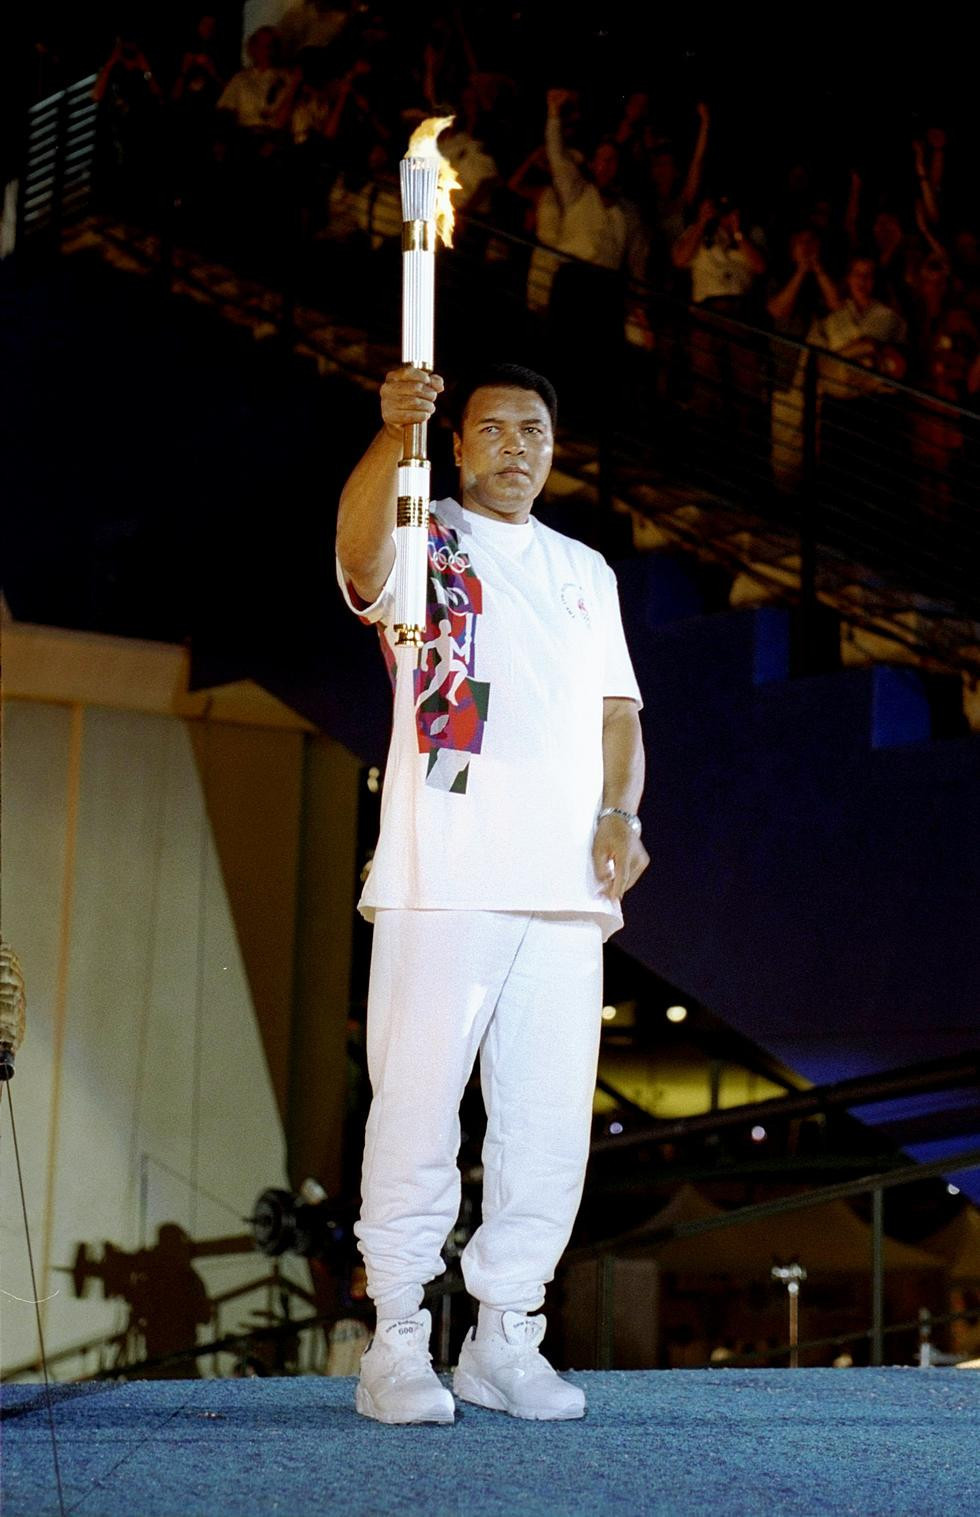 The lighting of the Olympic Cauldron by Muhammad Ali at the Opening Ceremony of the Atlanta 1996 Olympics proved to be one of the event's most iconic moments ©Getty Images